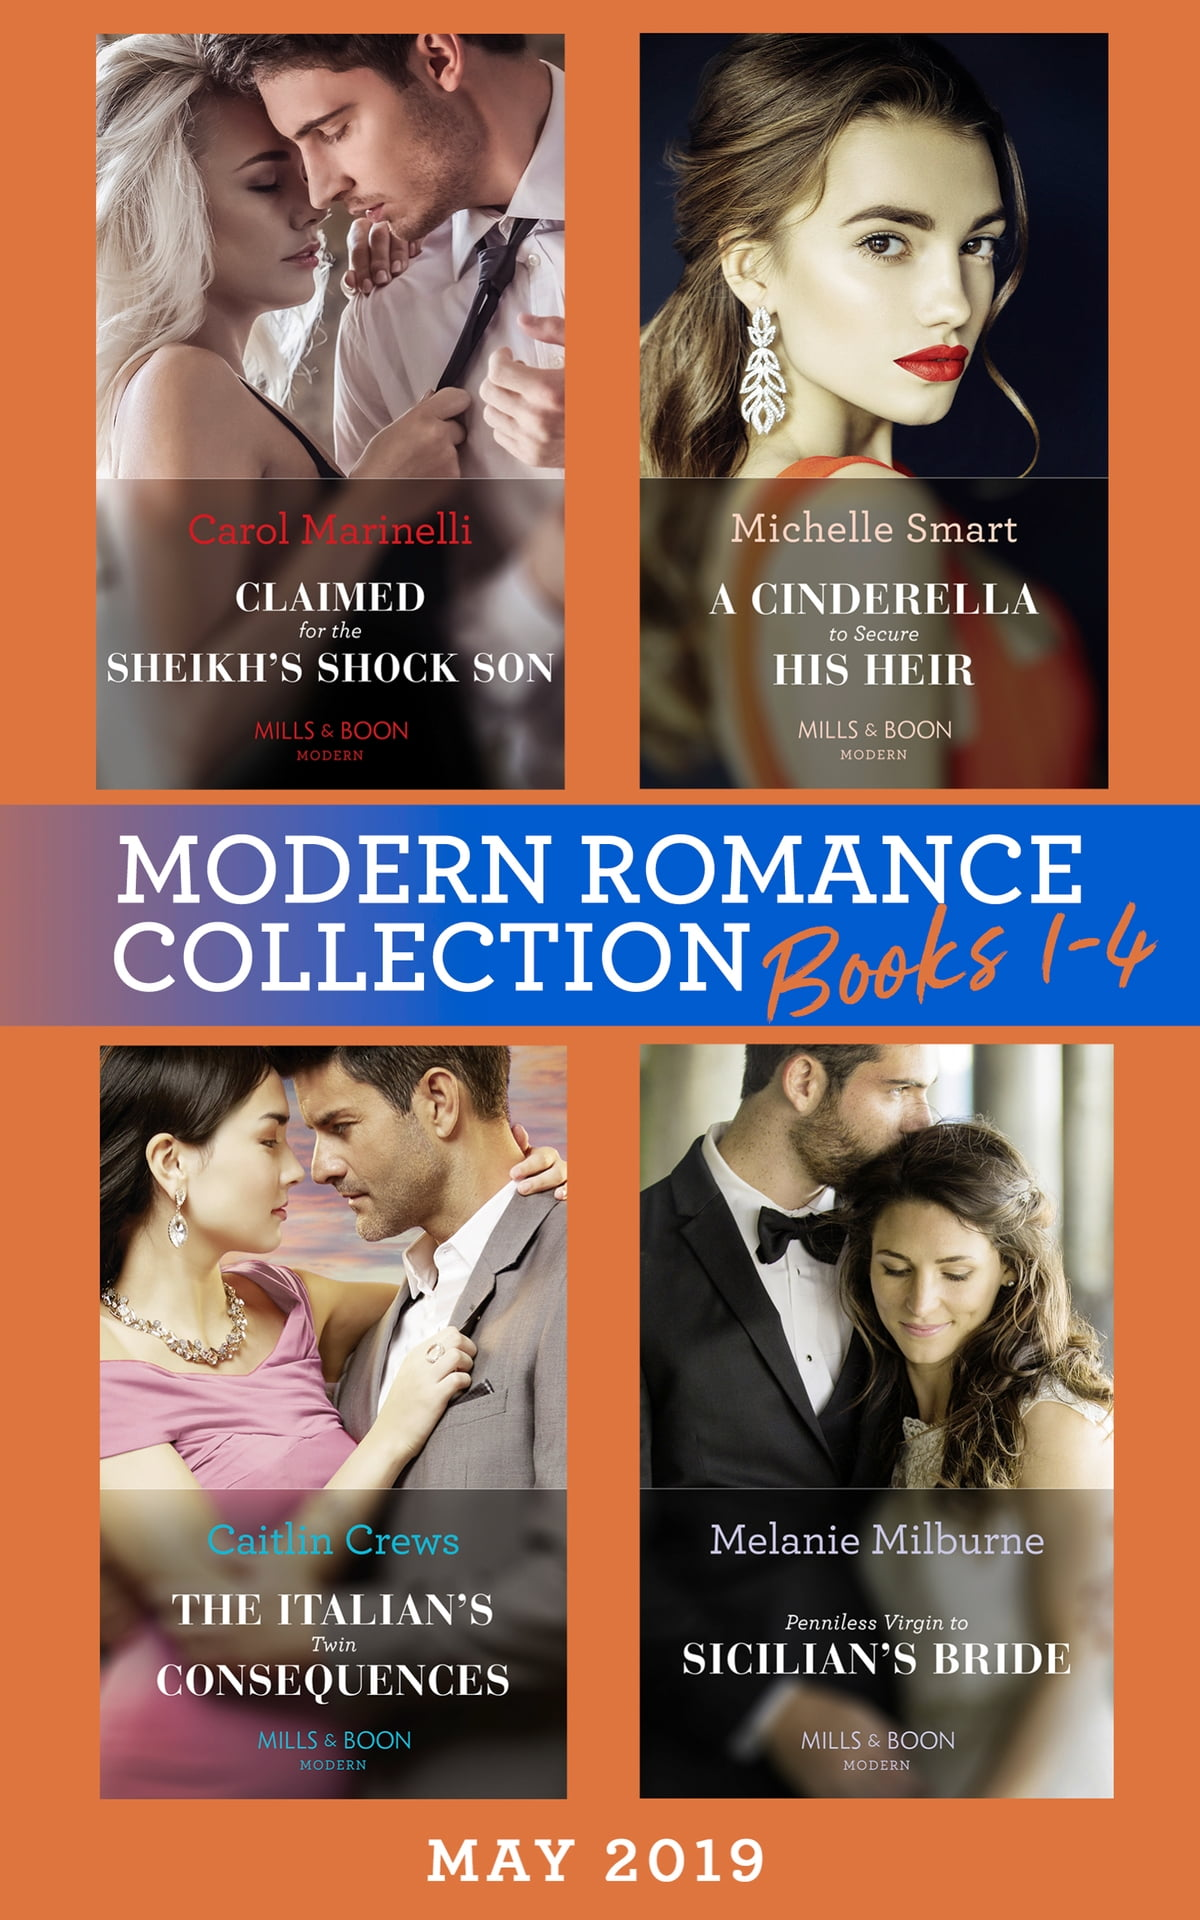 Guide A Ring to Secure His Heir (Mills & Boon Modern)